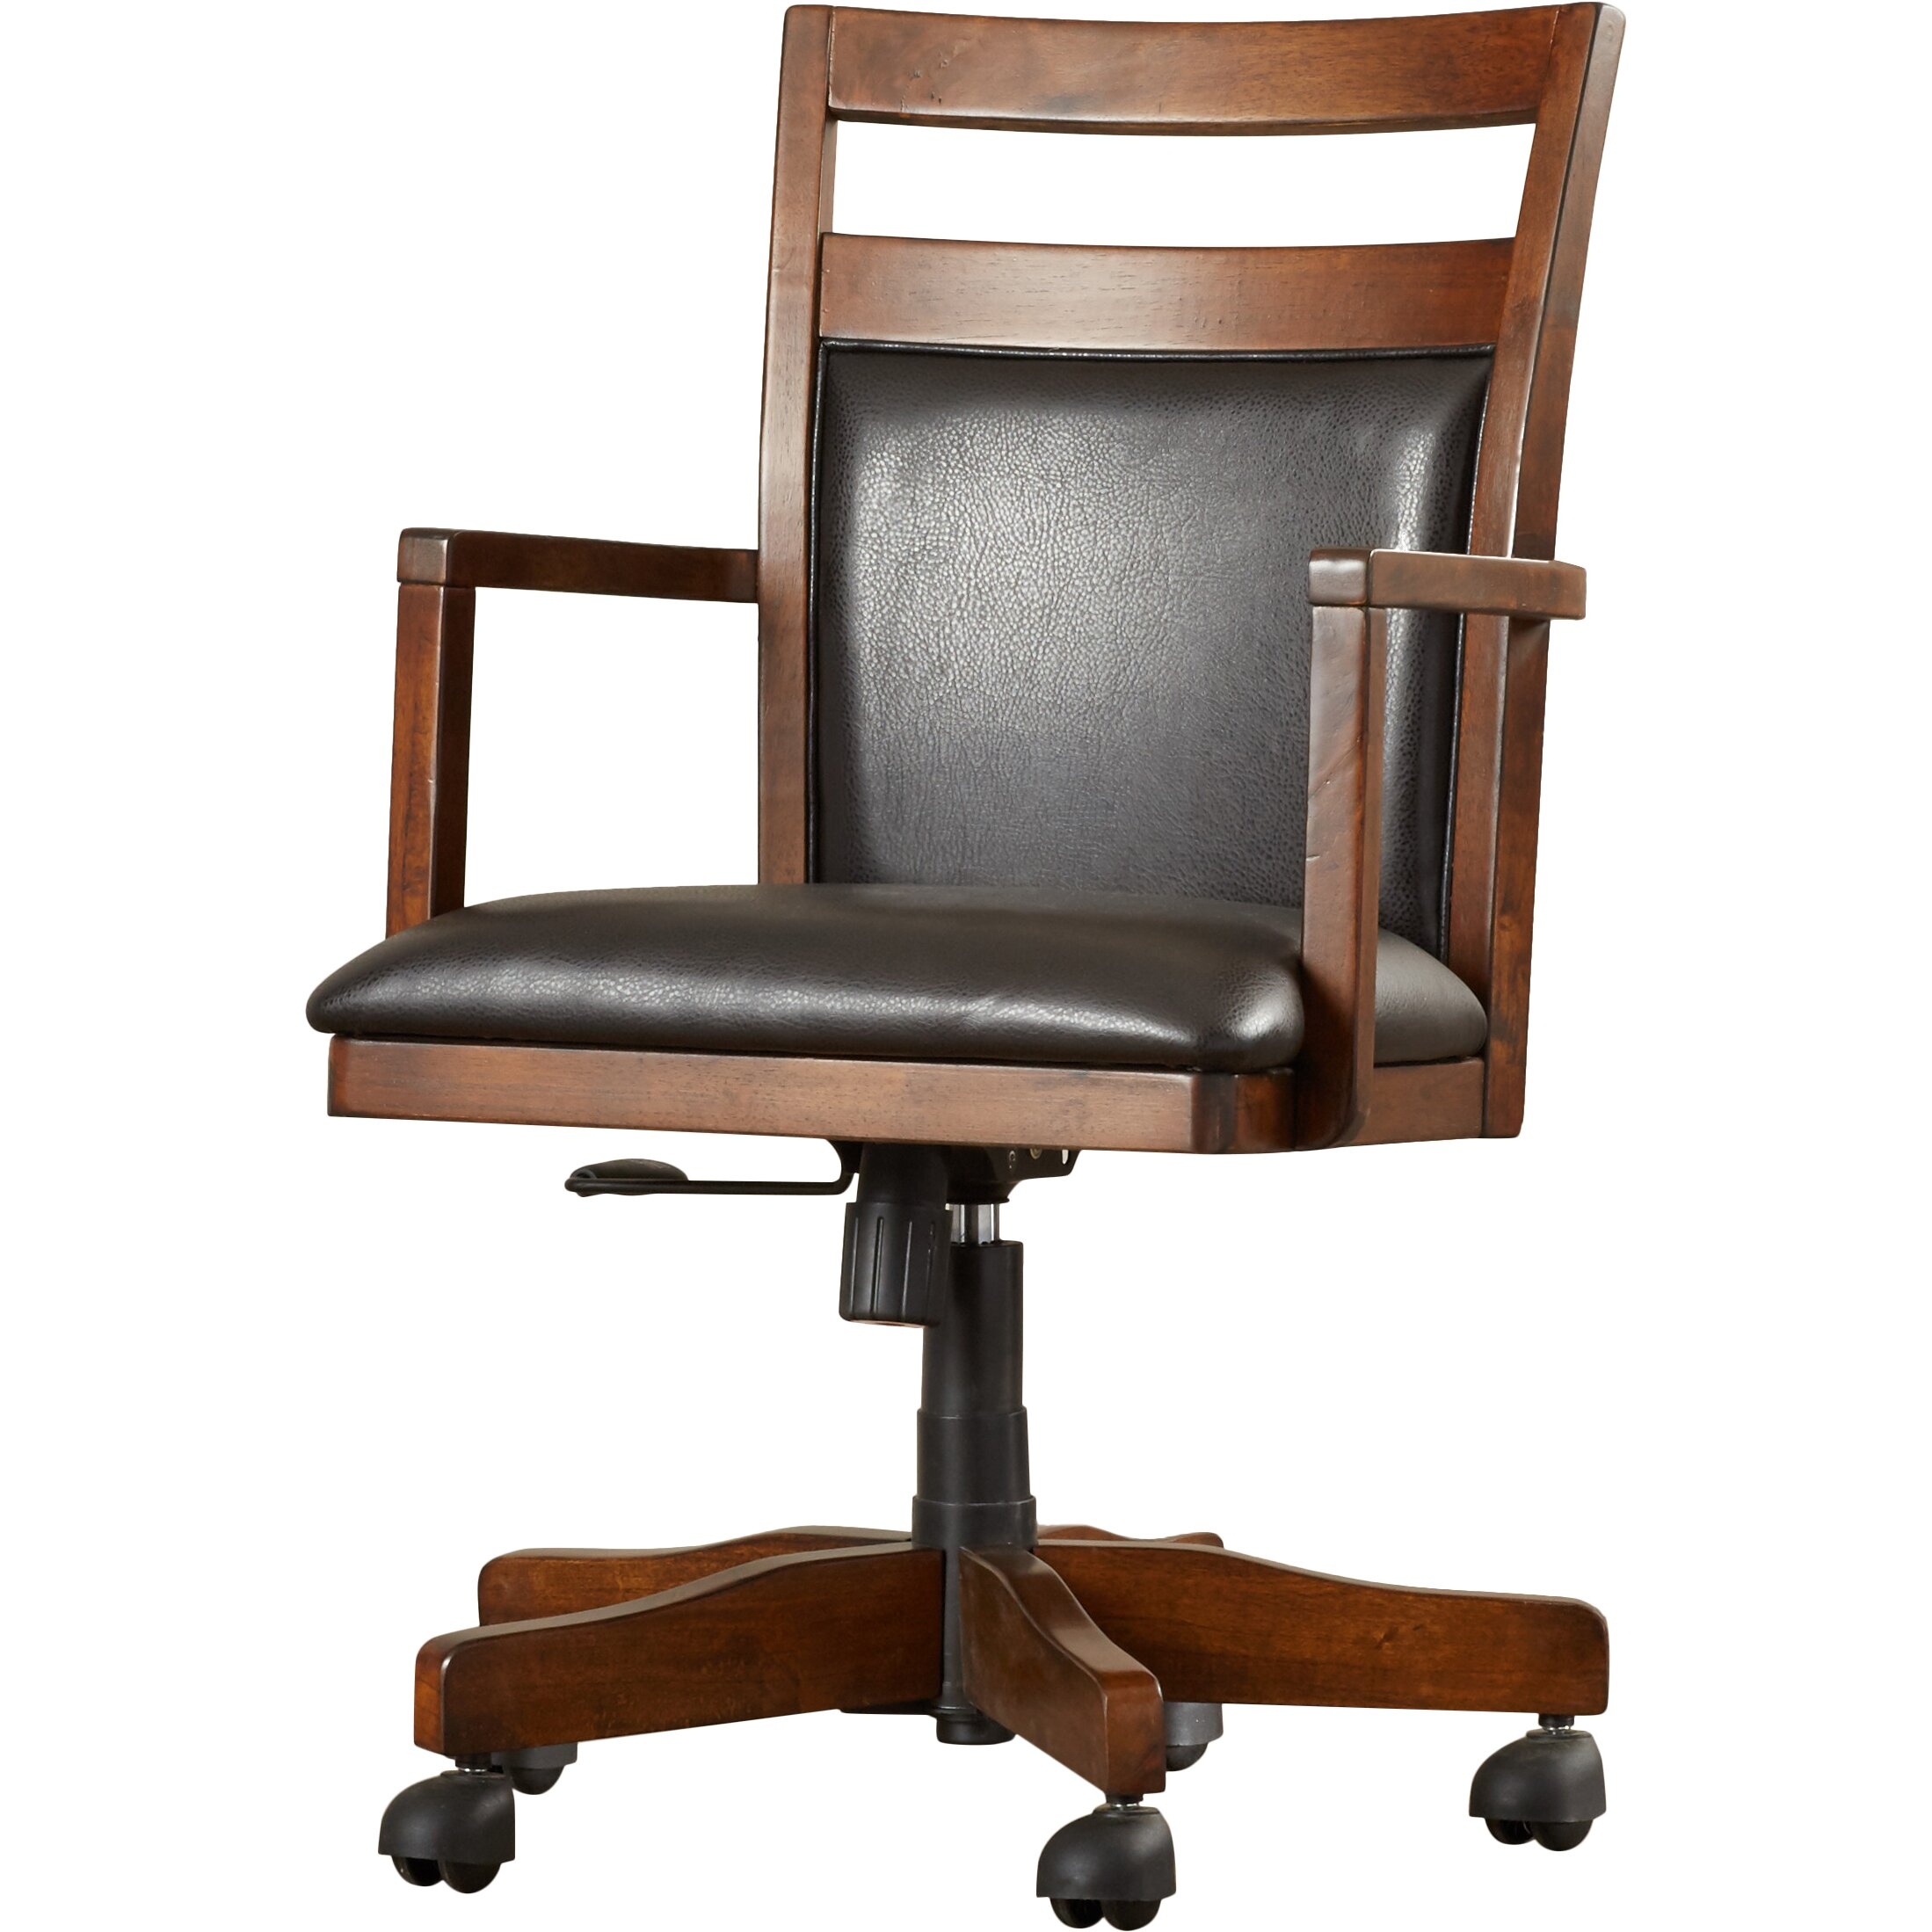 Loon peak auke desk chair reviews wayfair for Furniture 2 day shipping